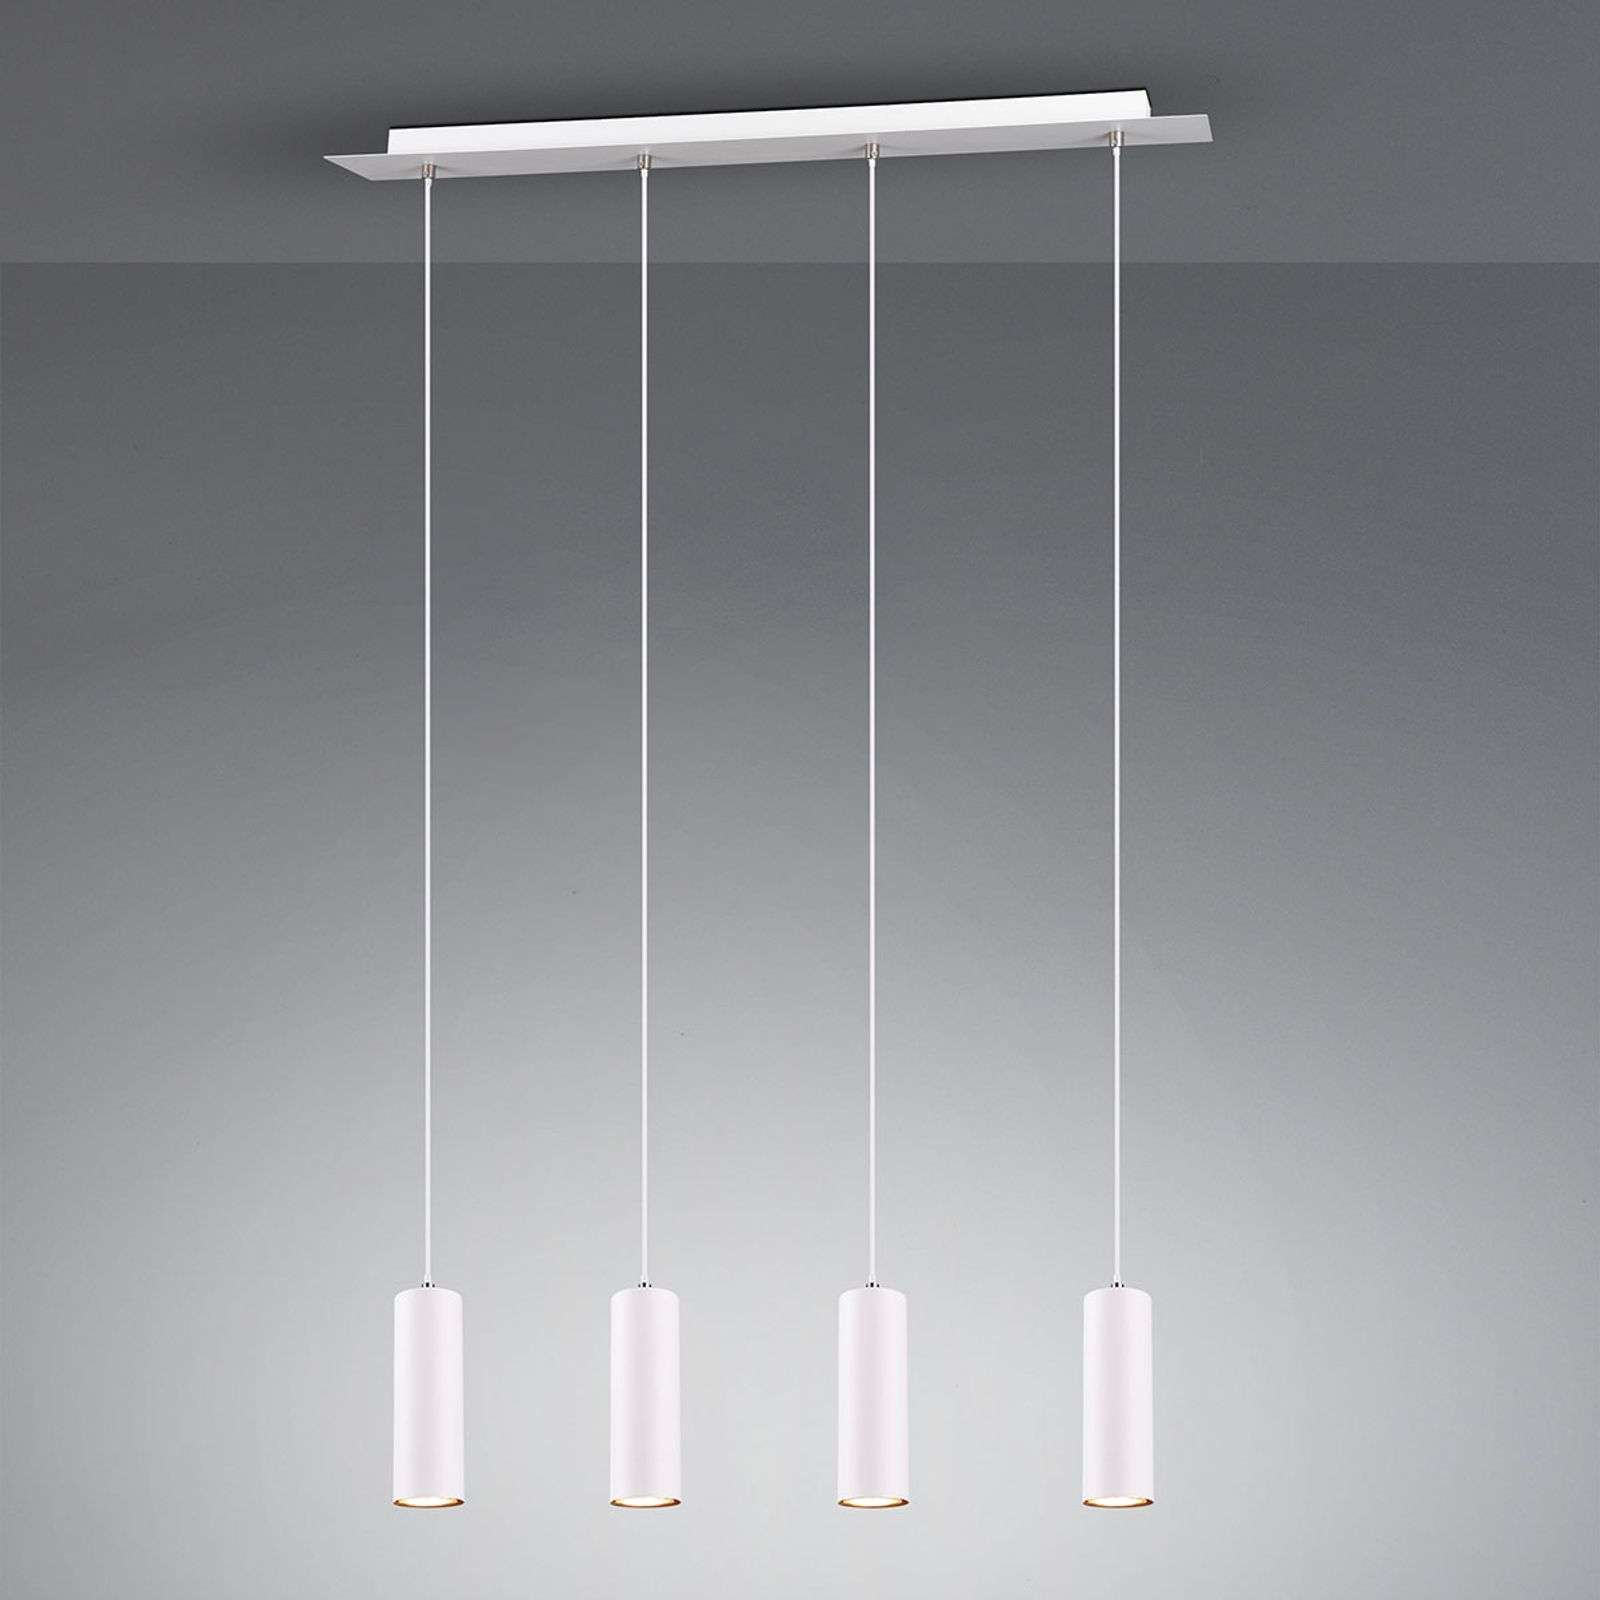 Suspension Marley, blanc, 4 lampes